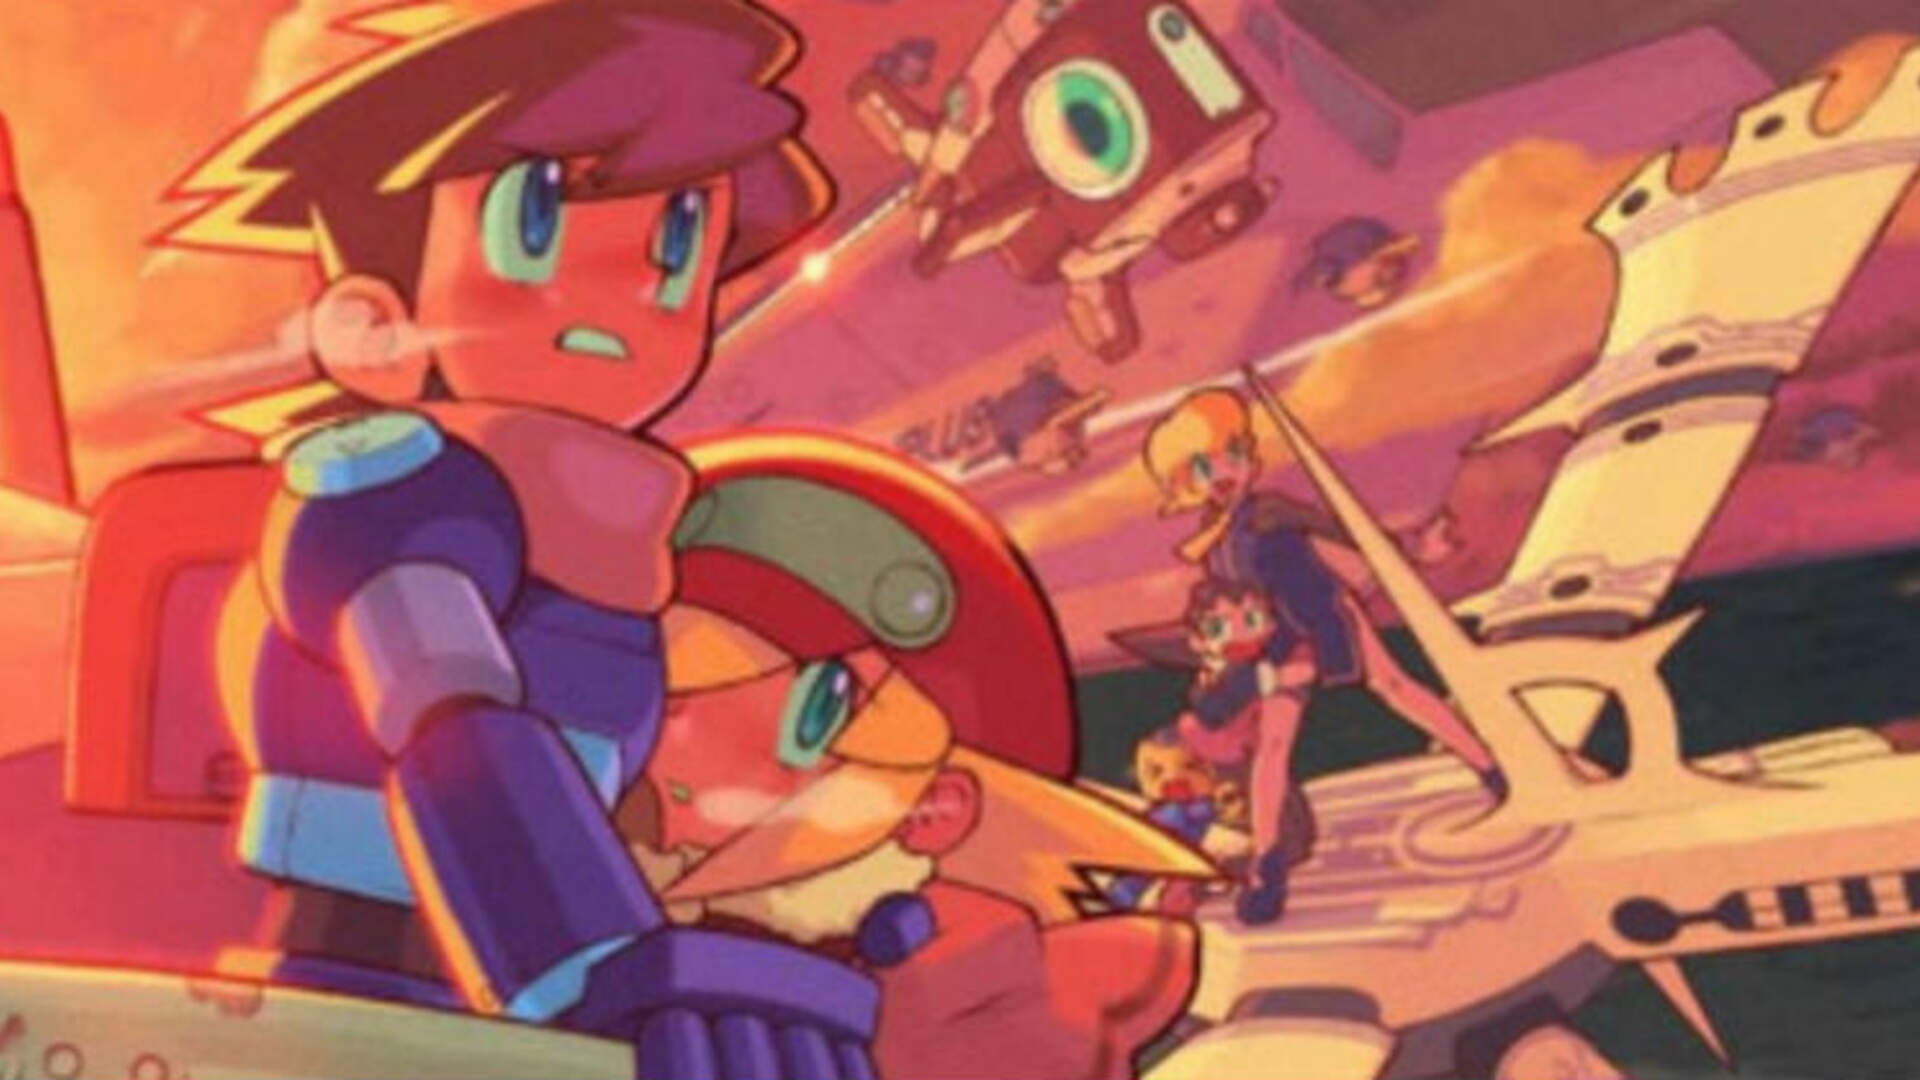 Mega Man Legends 2 Doesn't Just Need a Sequel, It Deserves One